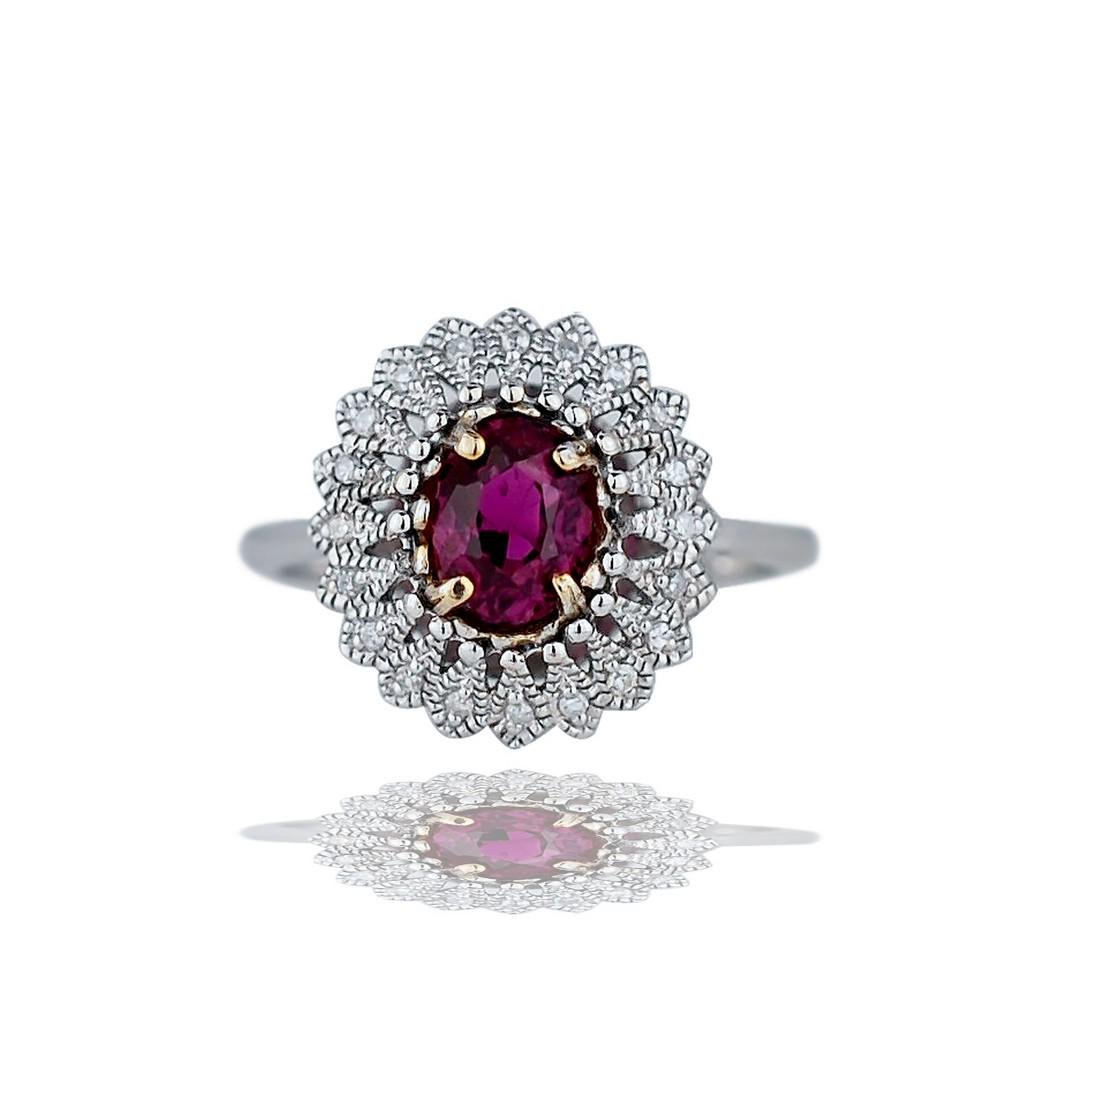 Tourmaline and Diamond Ring Accented In Tear-Shaped,